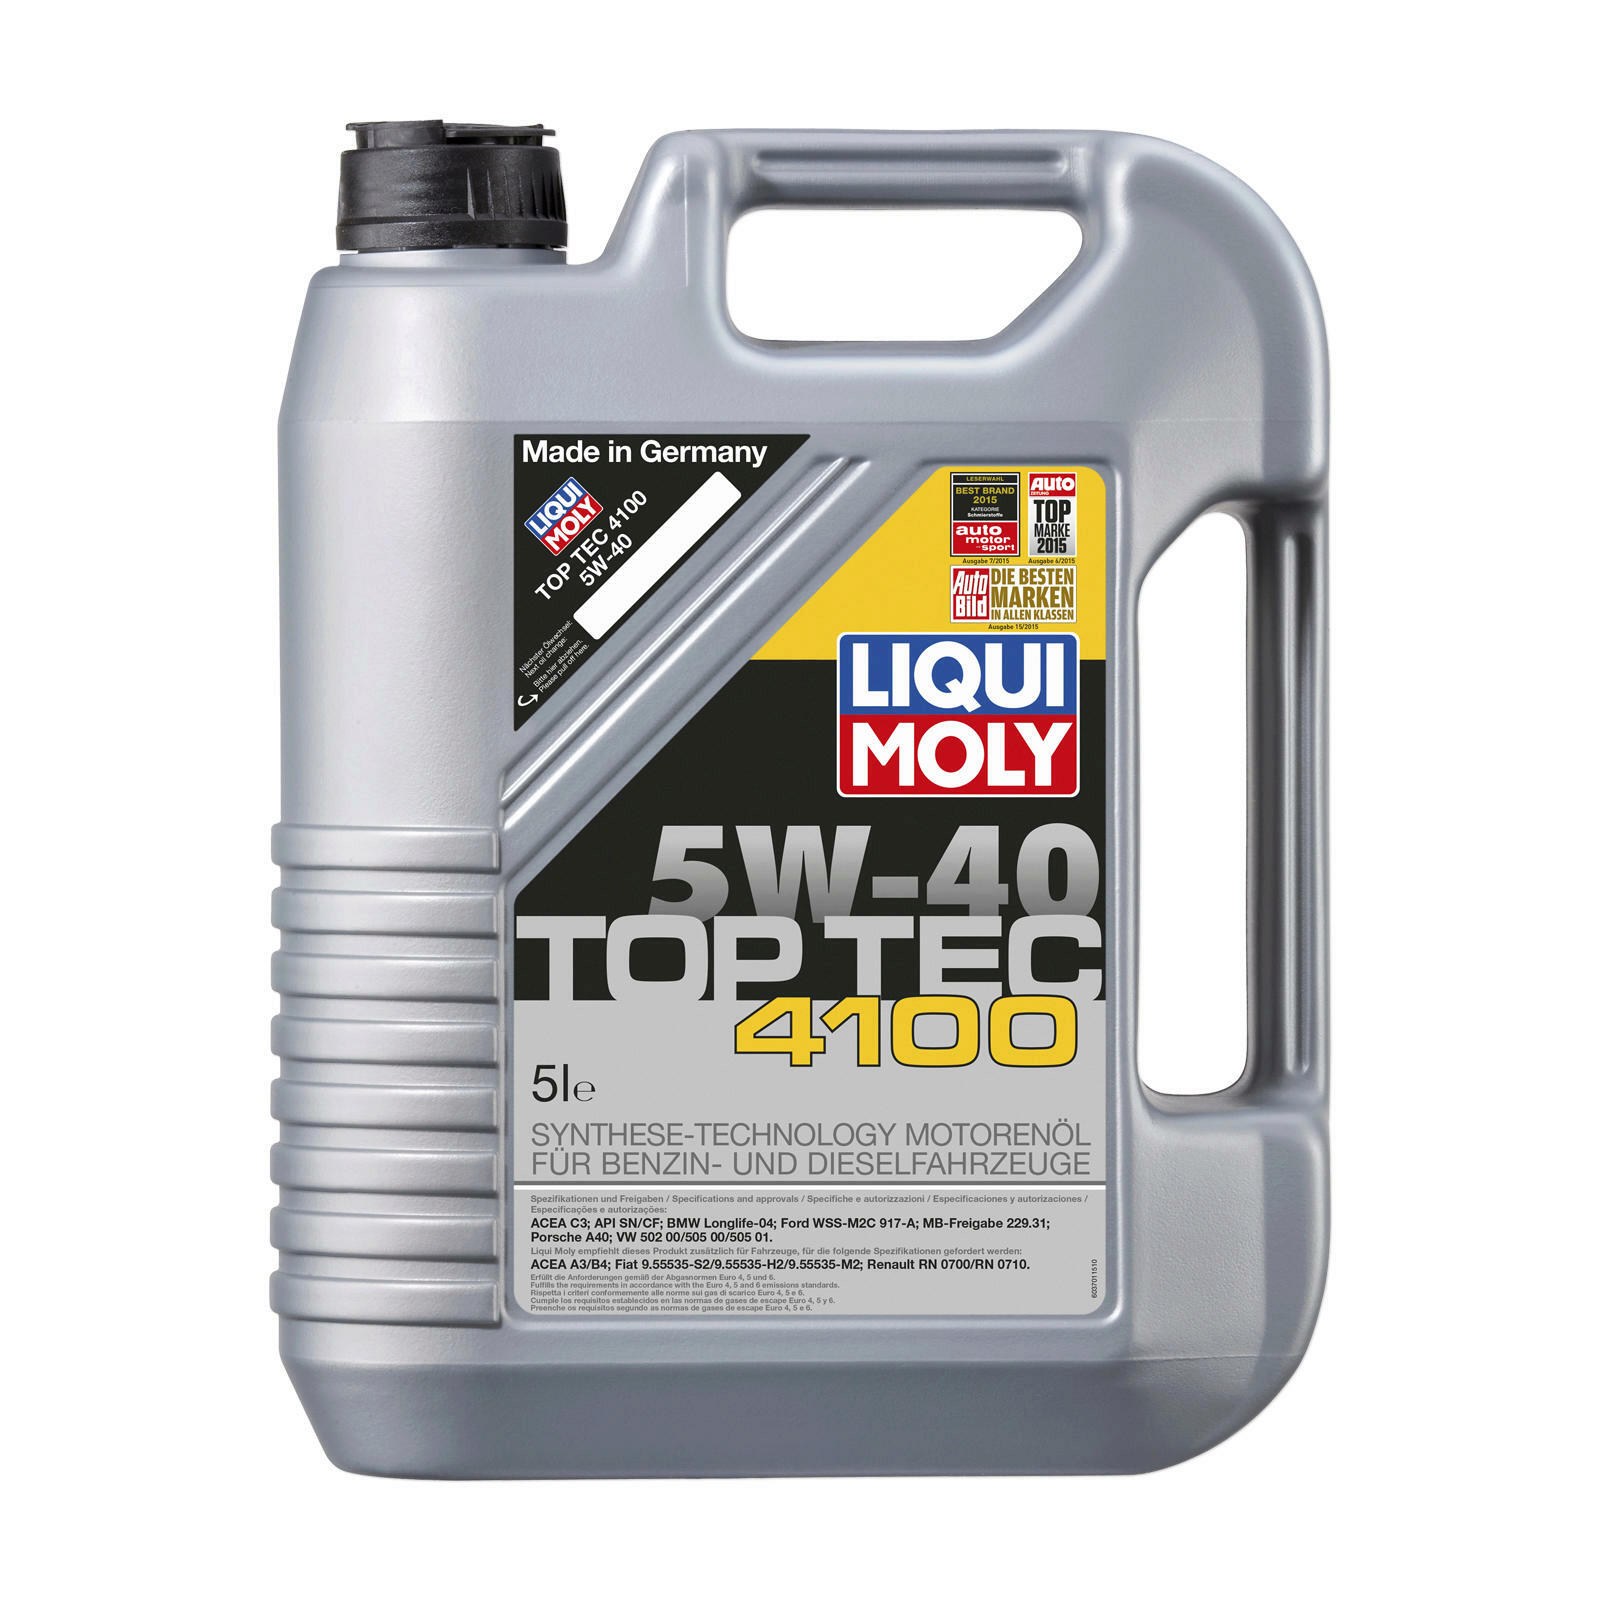 2x 5 liter original liqui moly motor l top tec 4100 5w40. Black Bedroom Furniture Sets. Home Design Ideas